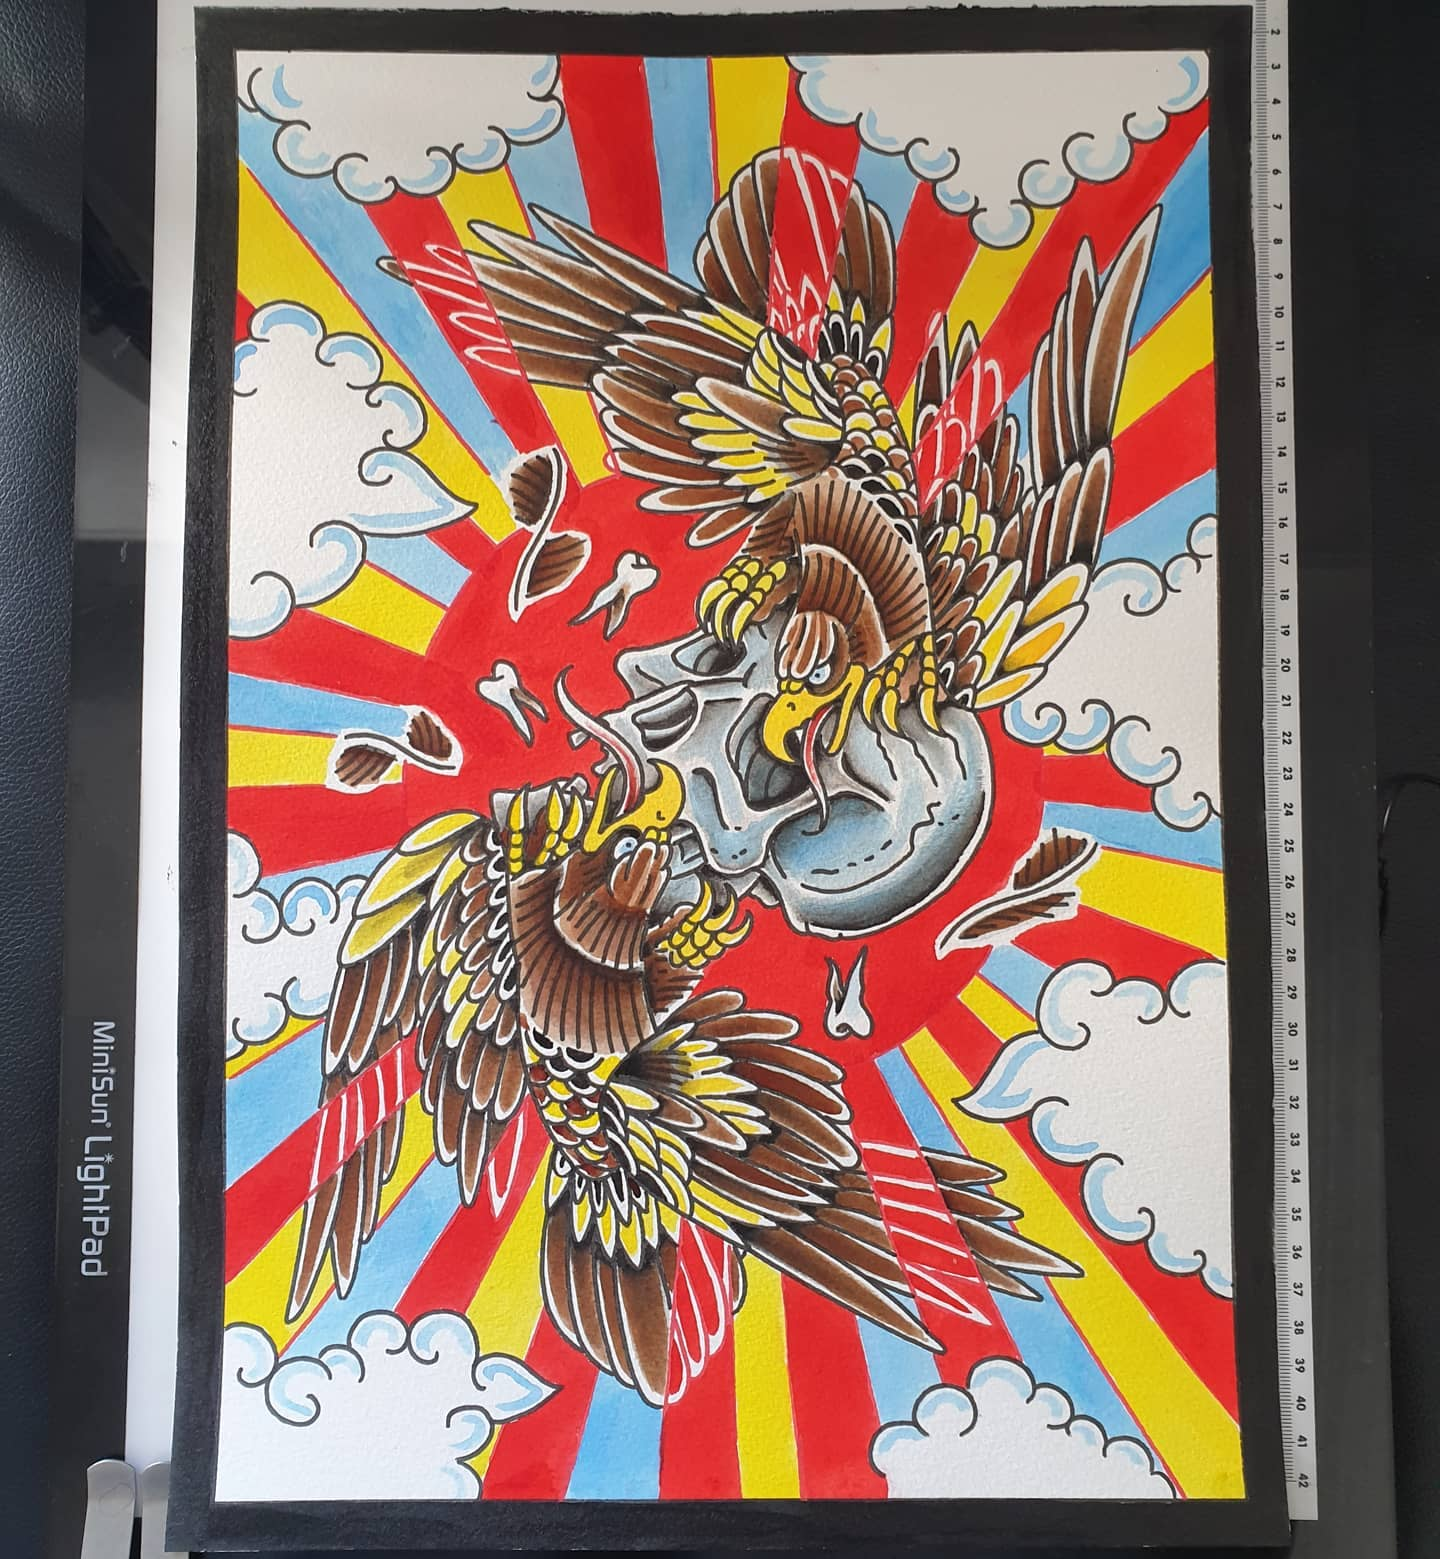 New painting a3, will hopefully be available as prints SOON! This woild make a sick front/backpiece, just saying🙄🤣 Hope everyone is hanging in there, we&039;re enjoying the sun from inside as we have no garden ️️️...thanks for looking eagle traditionaleagle goldeneagle tattooart tattoodesign tradeagle traditionaltattoos tradtattoos tattooflash tattoodesigns skull eagleandskull trad painteveryday draweveryday art artist lockdownart lockdown tattoos scottishtattooist scotland scottishtattooer edinburgh studioxiiigallery studioxiii tattoosbyalanross alrosstattoo